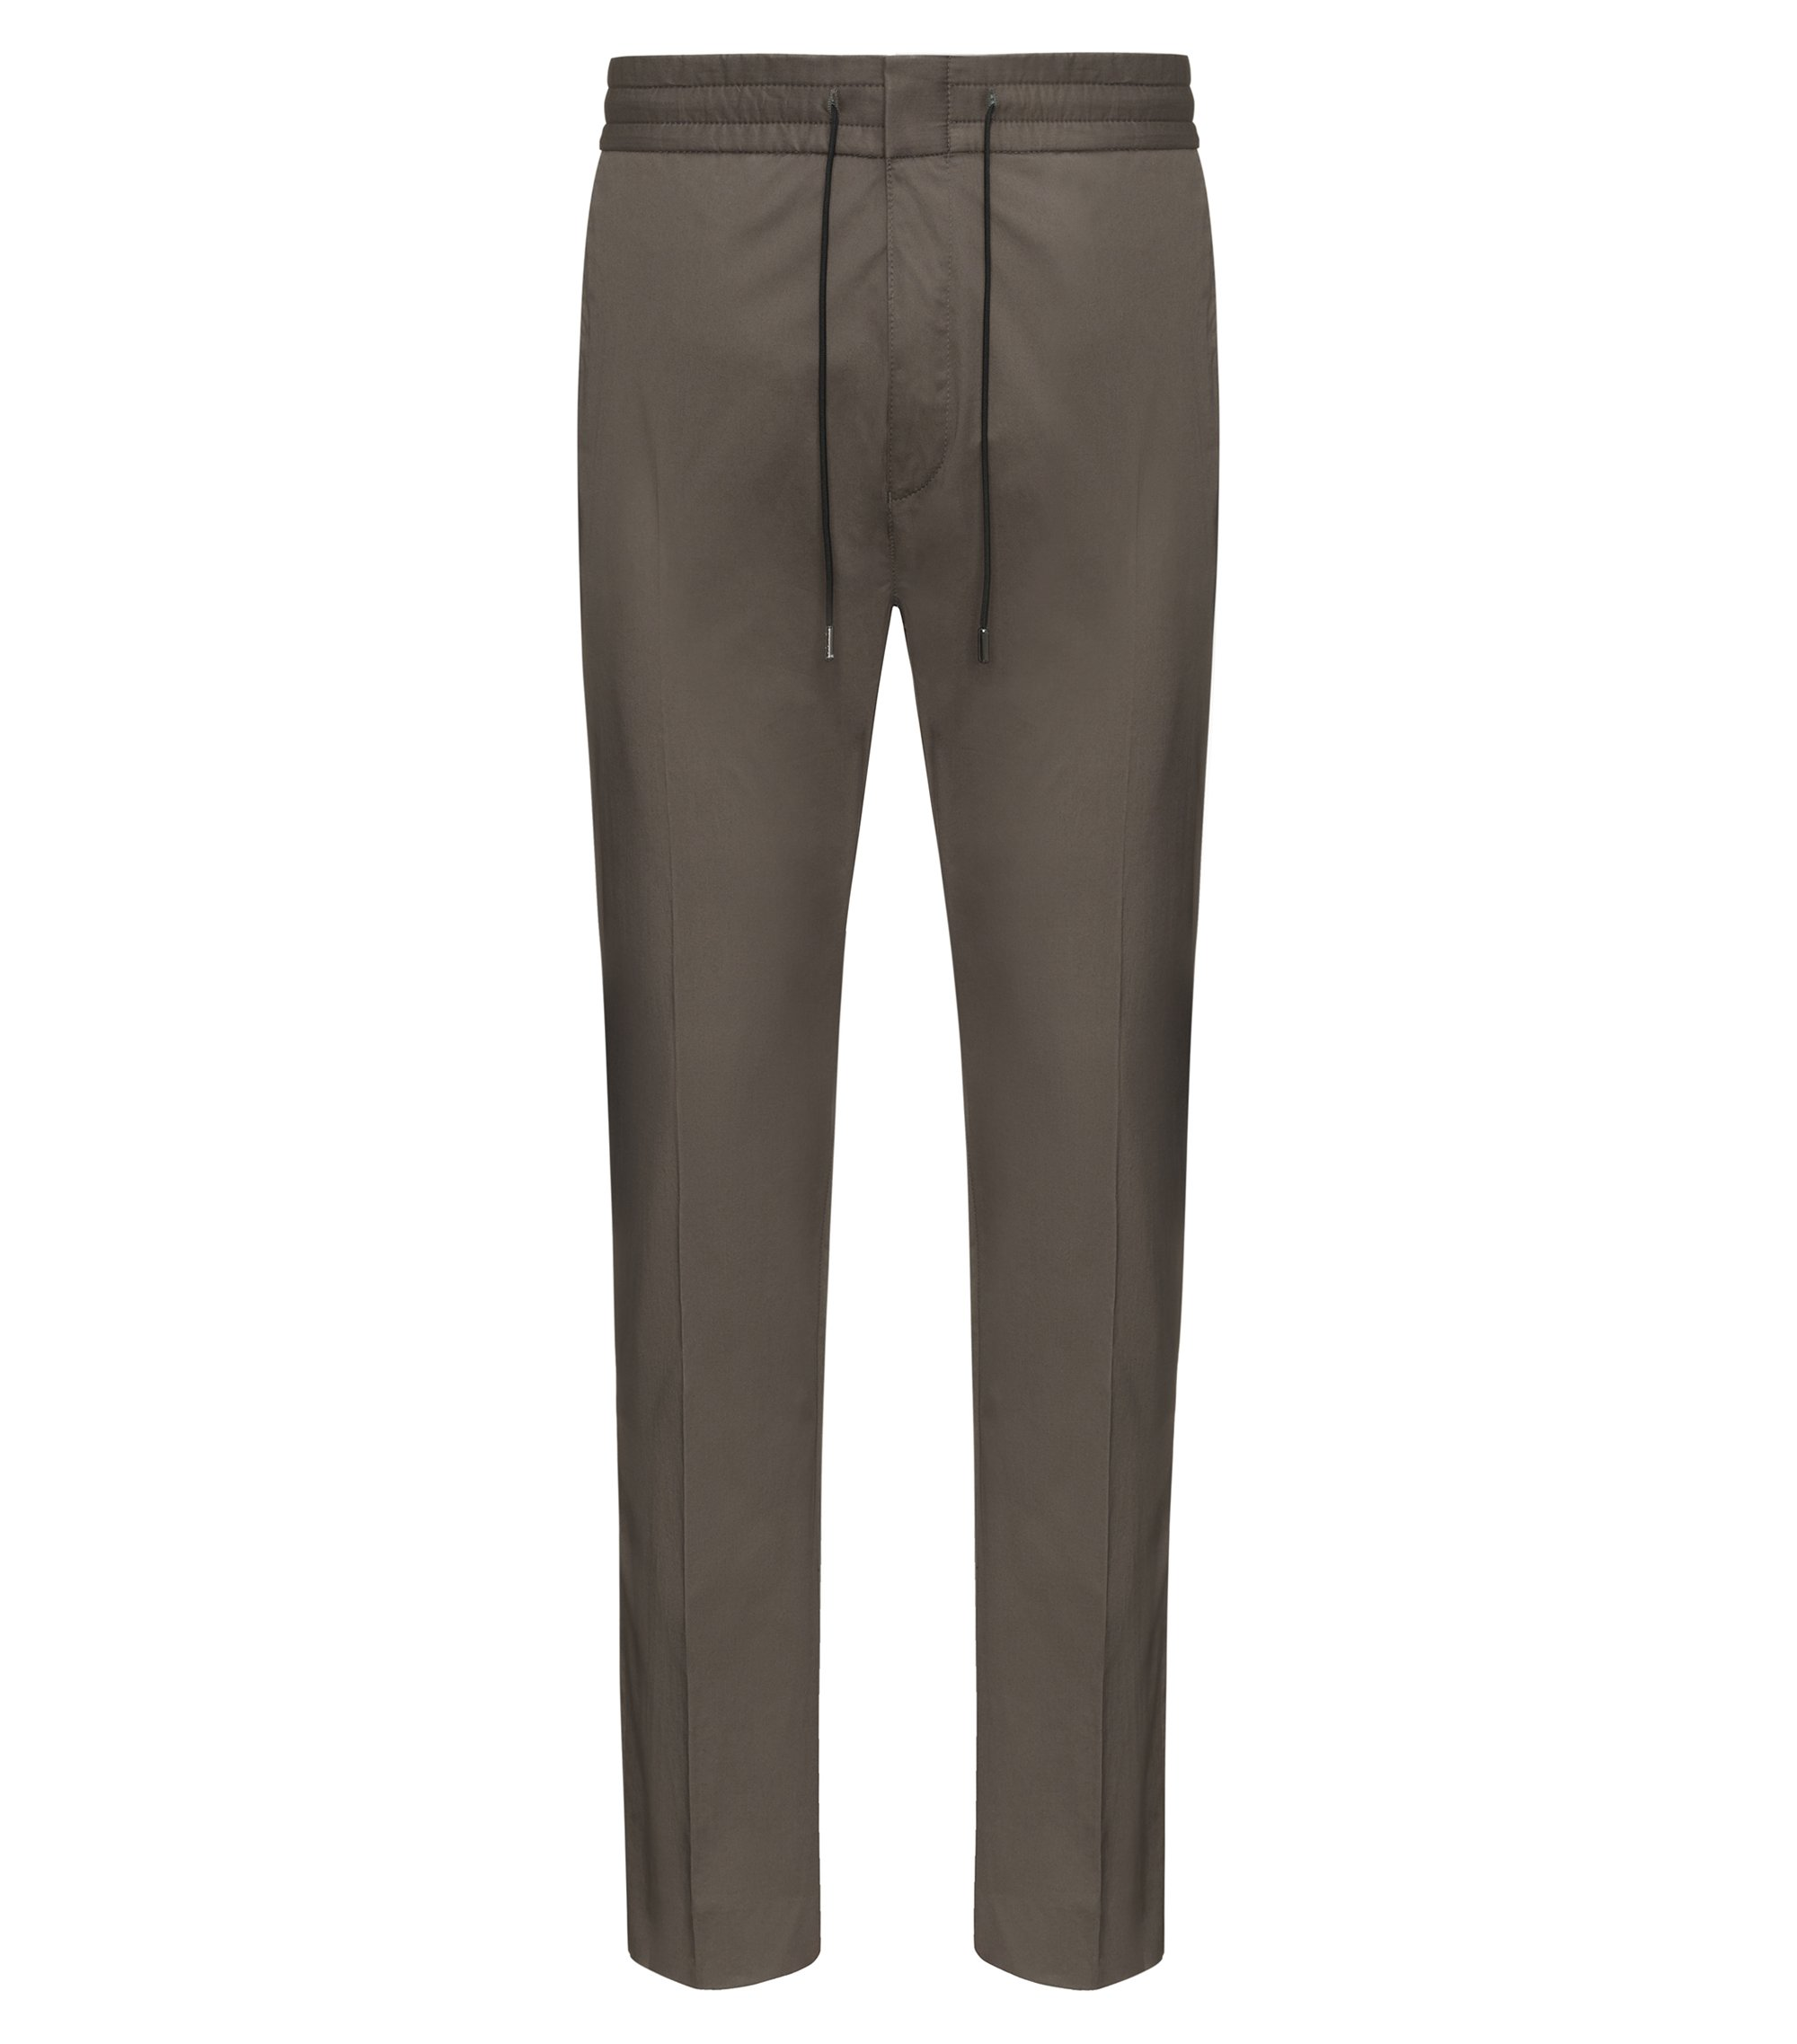 Stretch Cotton Pant, Tapered Fit | Himesh, Brown